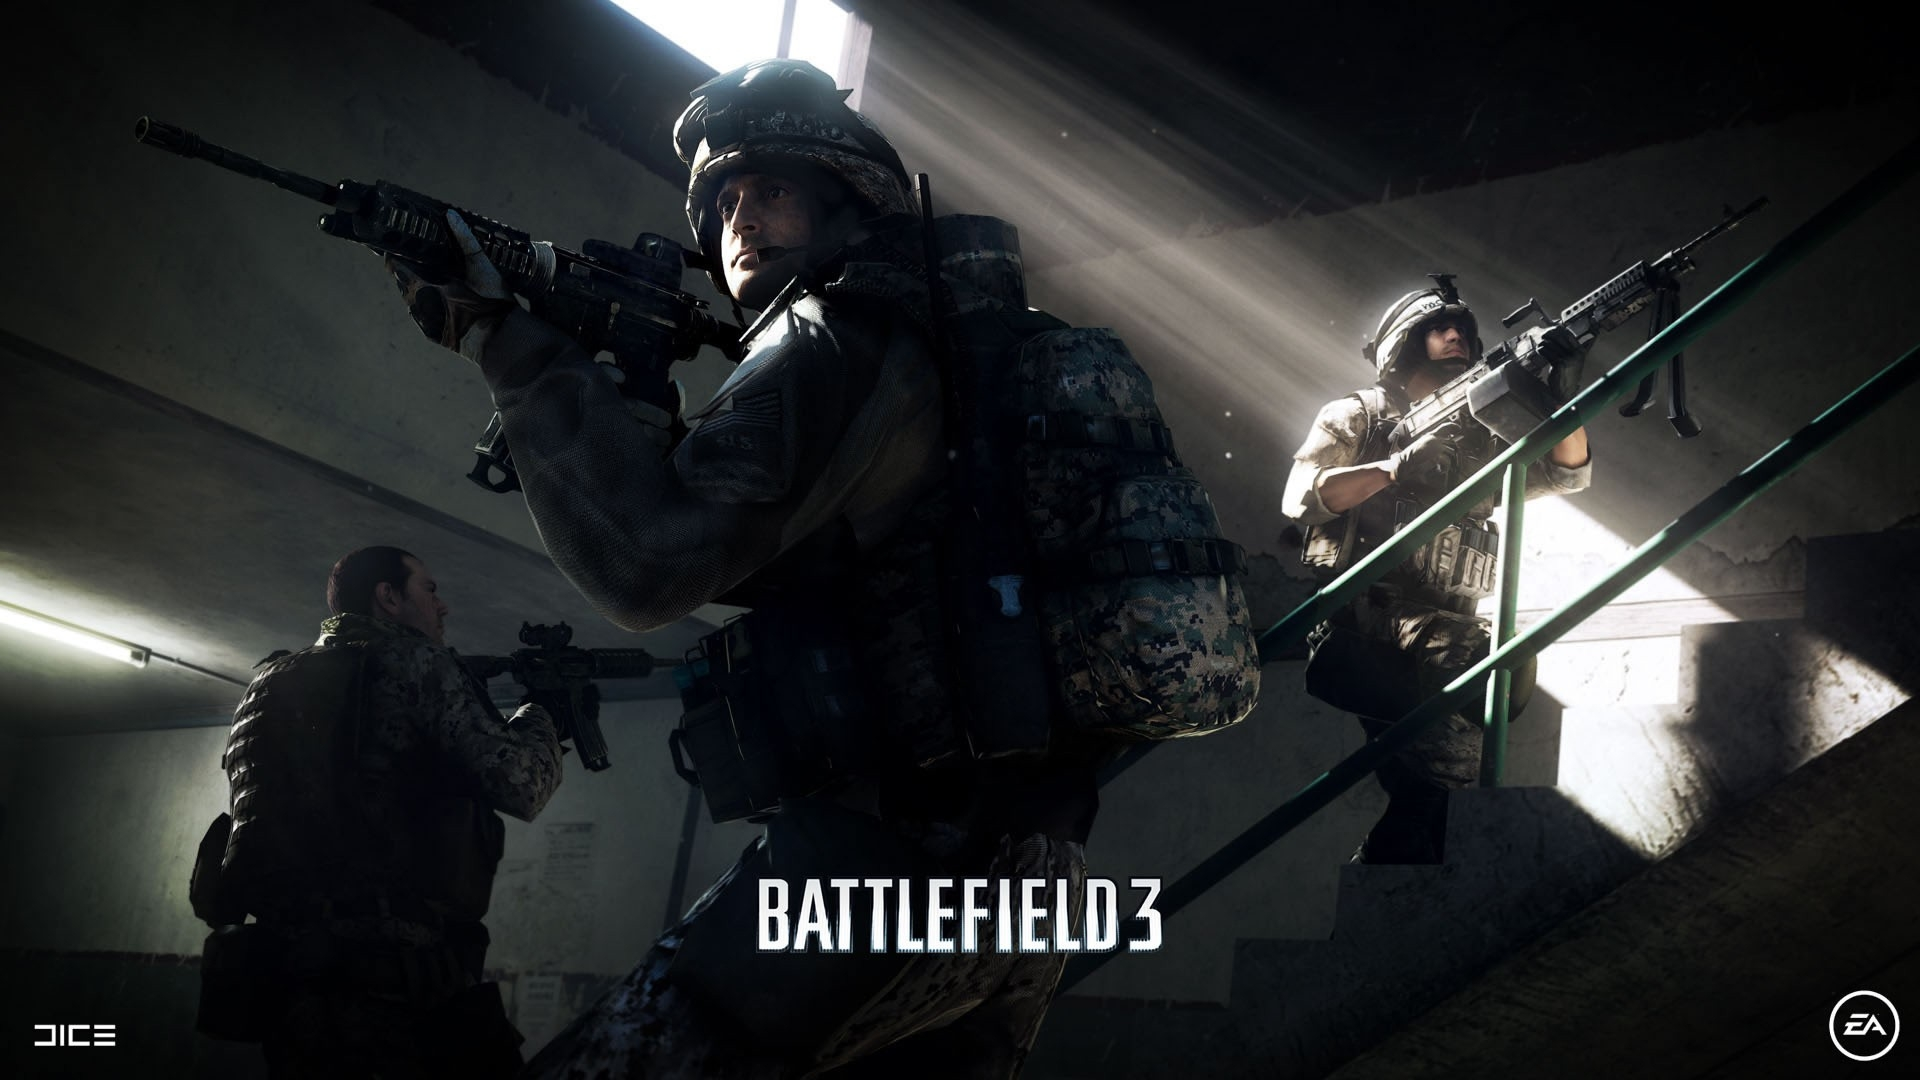 download wallpaper 1920x1080 battlefield 3, soldiers, gun, windows